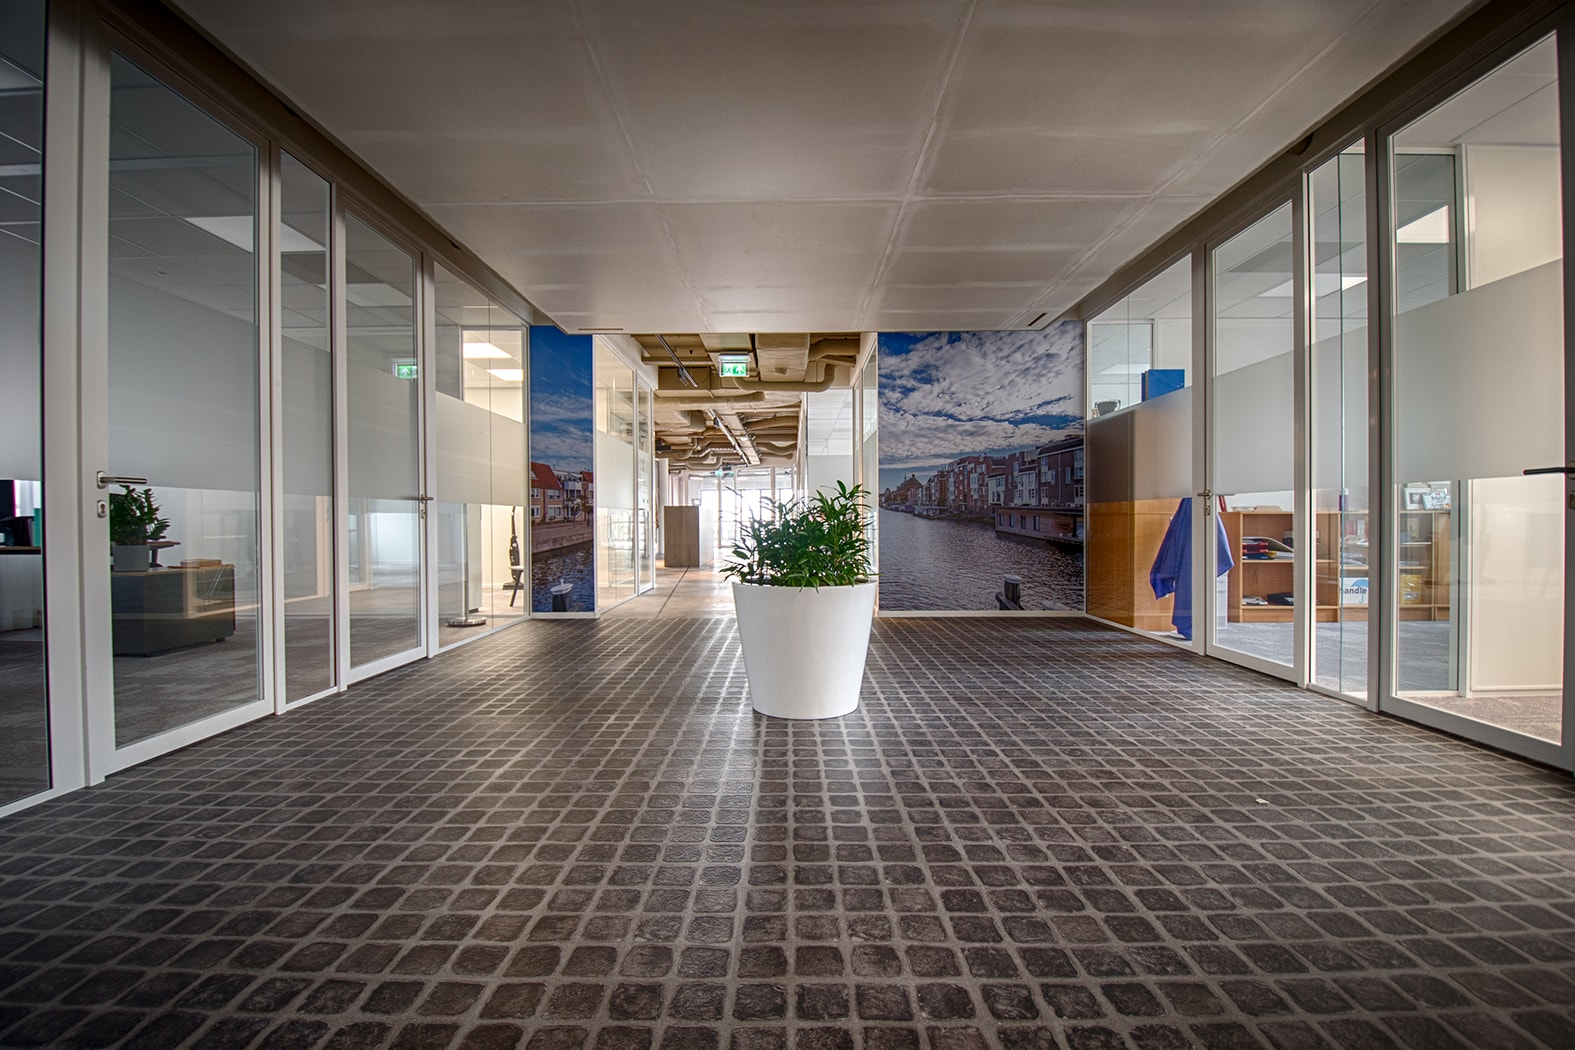 Bedrijfsruimte huren Leiden | Crown Business Center | Office & Meetings